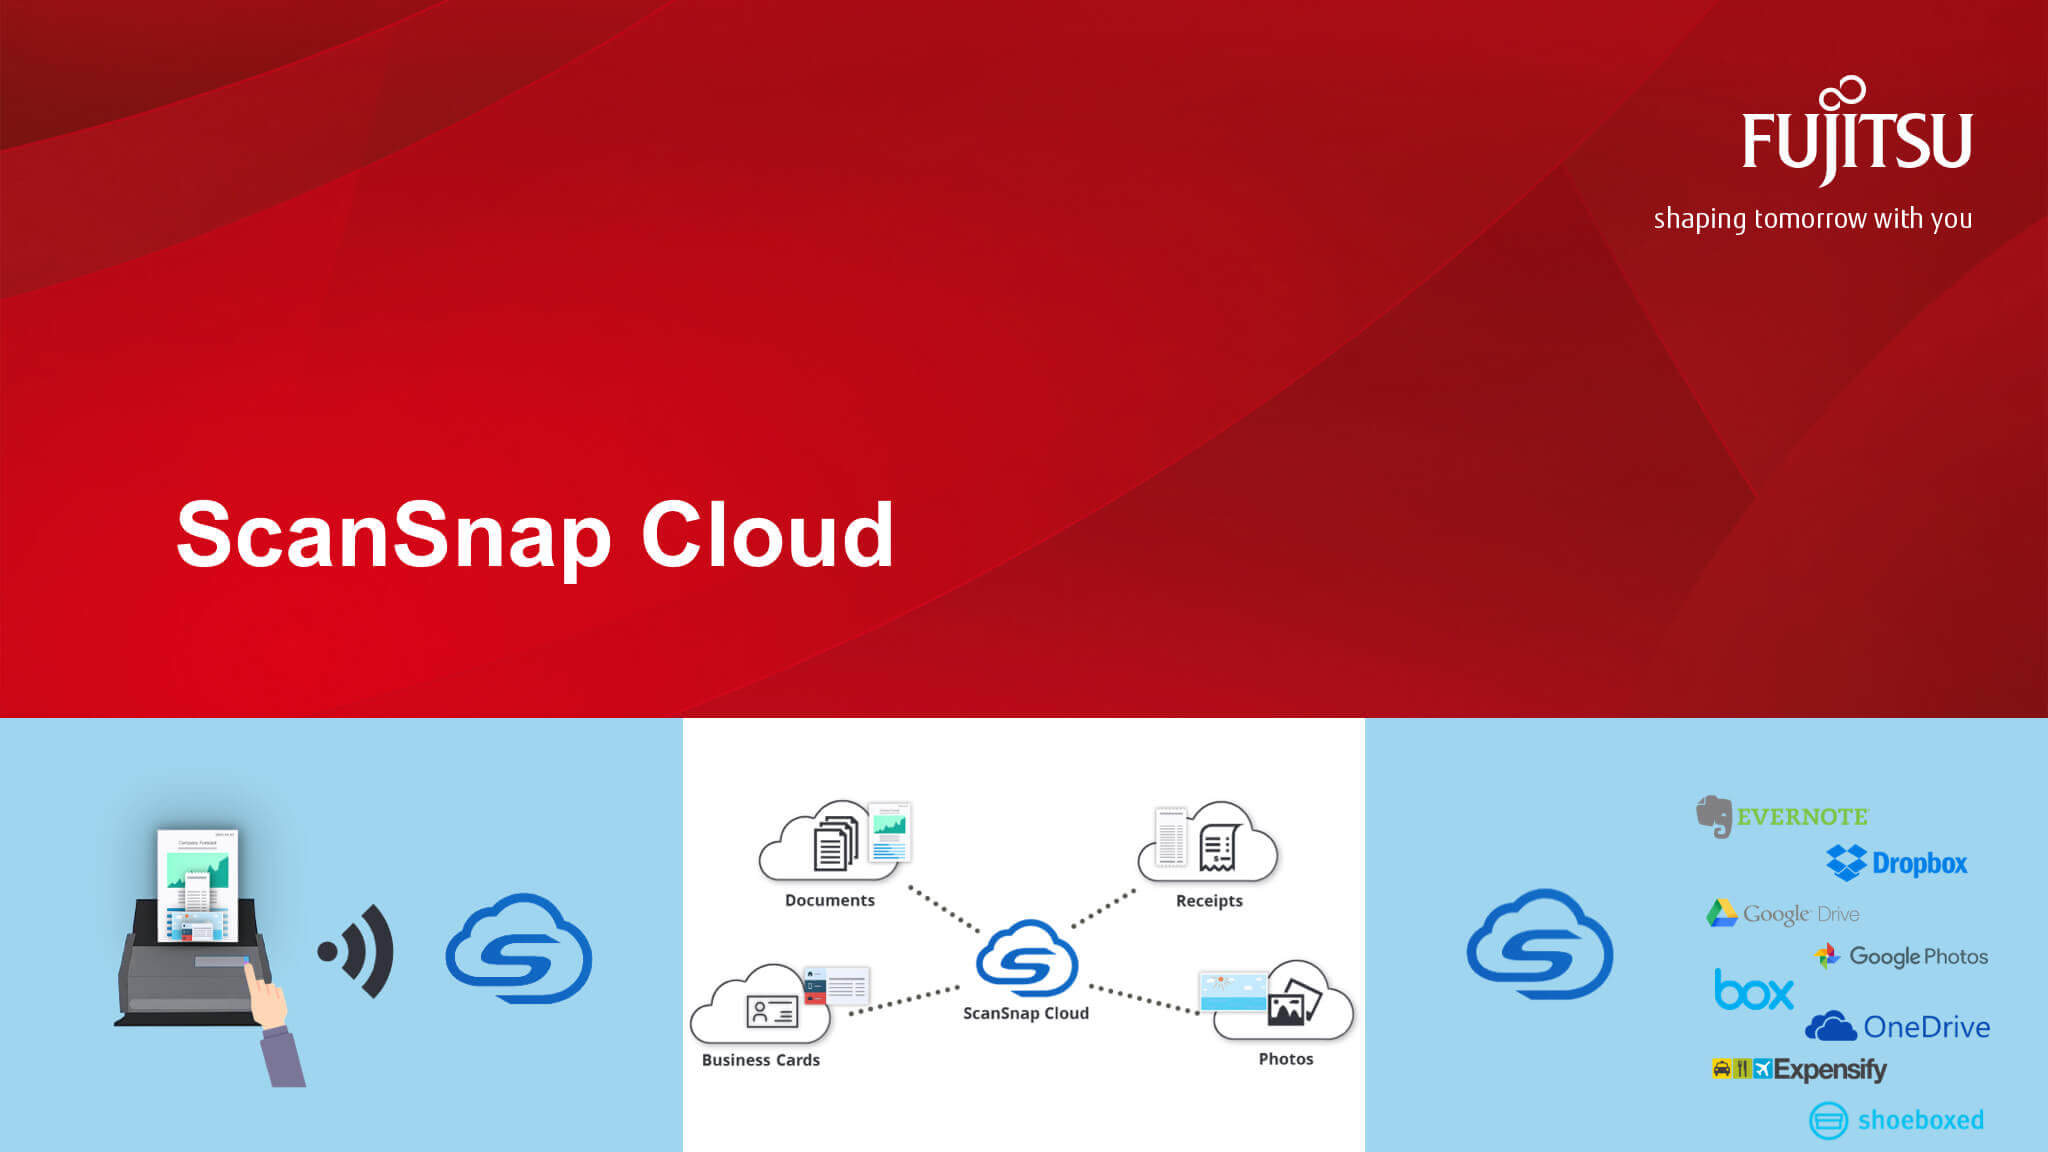 ScanSnap Cloud - ScanSnap iX500 und ScanSnap iX100 - direktes Scannen in die Cloud